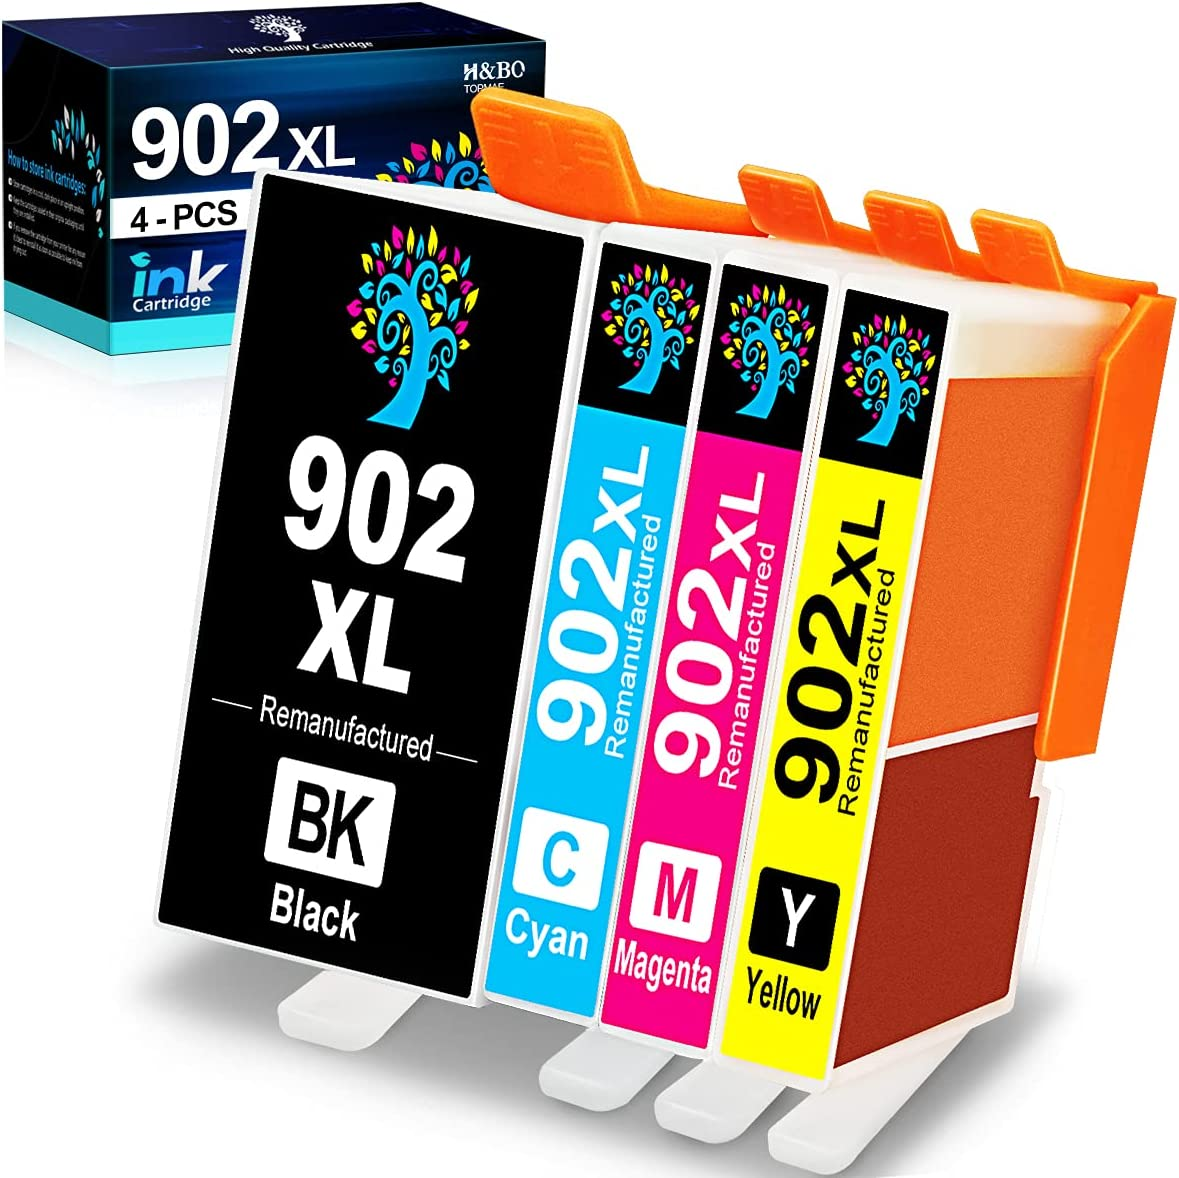 H&BO TOPMAE Compatible Ink Cartridge Replacement for HP 902XL 902 XL Ink Cartridge for HP OfficeJet Pro 6978 6968 6958 6962 6950 6954 6960 6970 6975 6979 Printer (4 Pack)